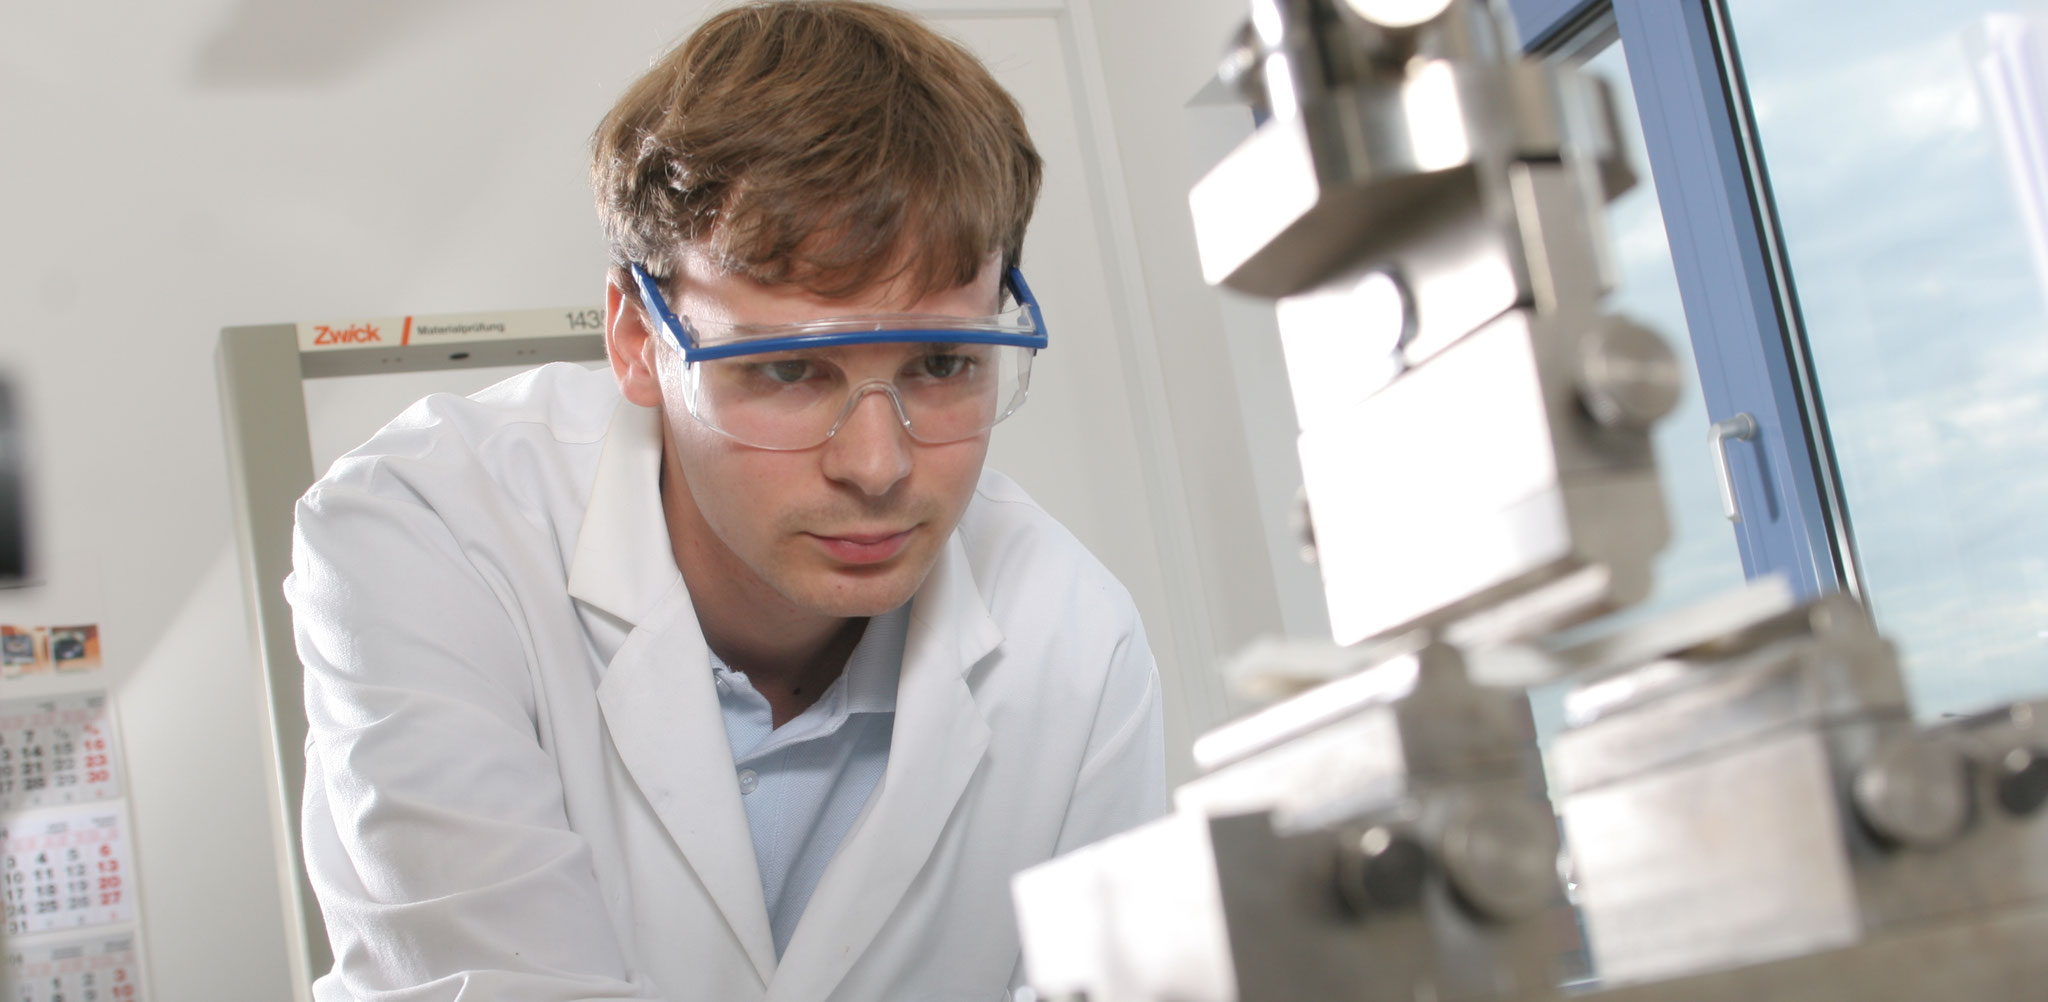 Wir test the characteristic of composite materials